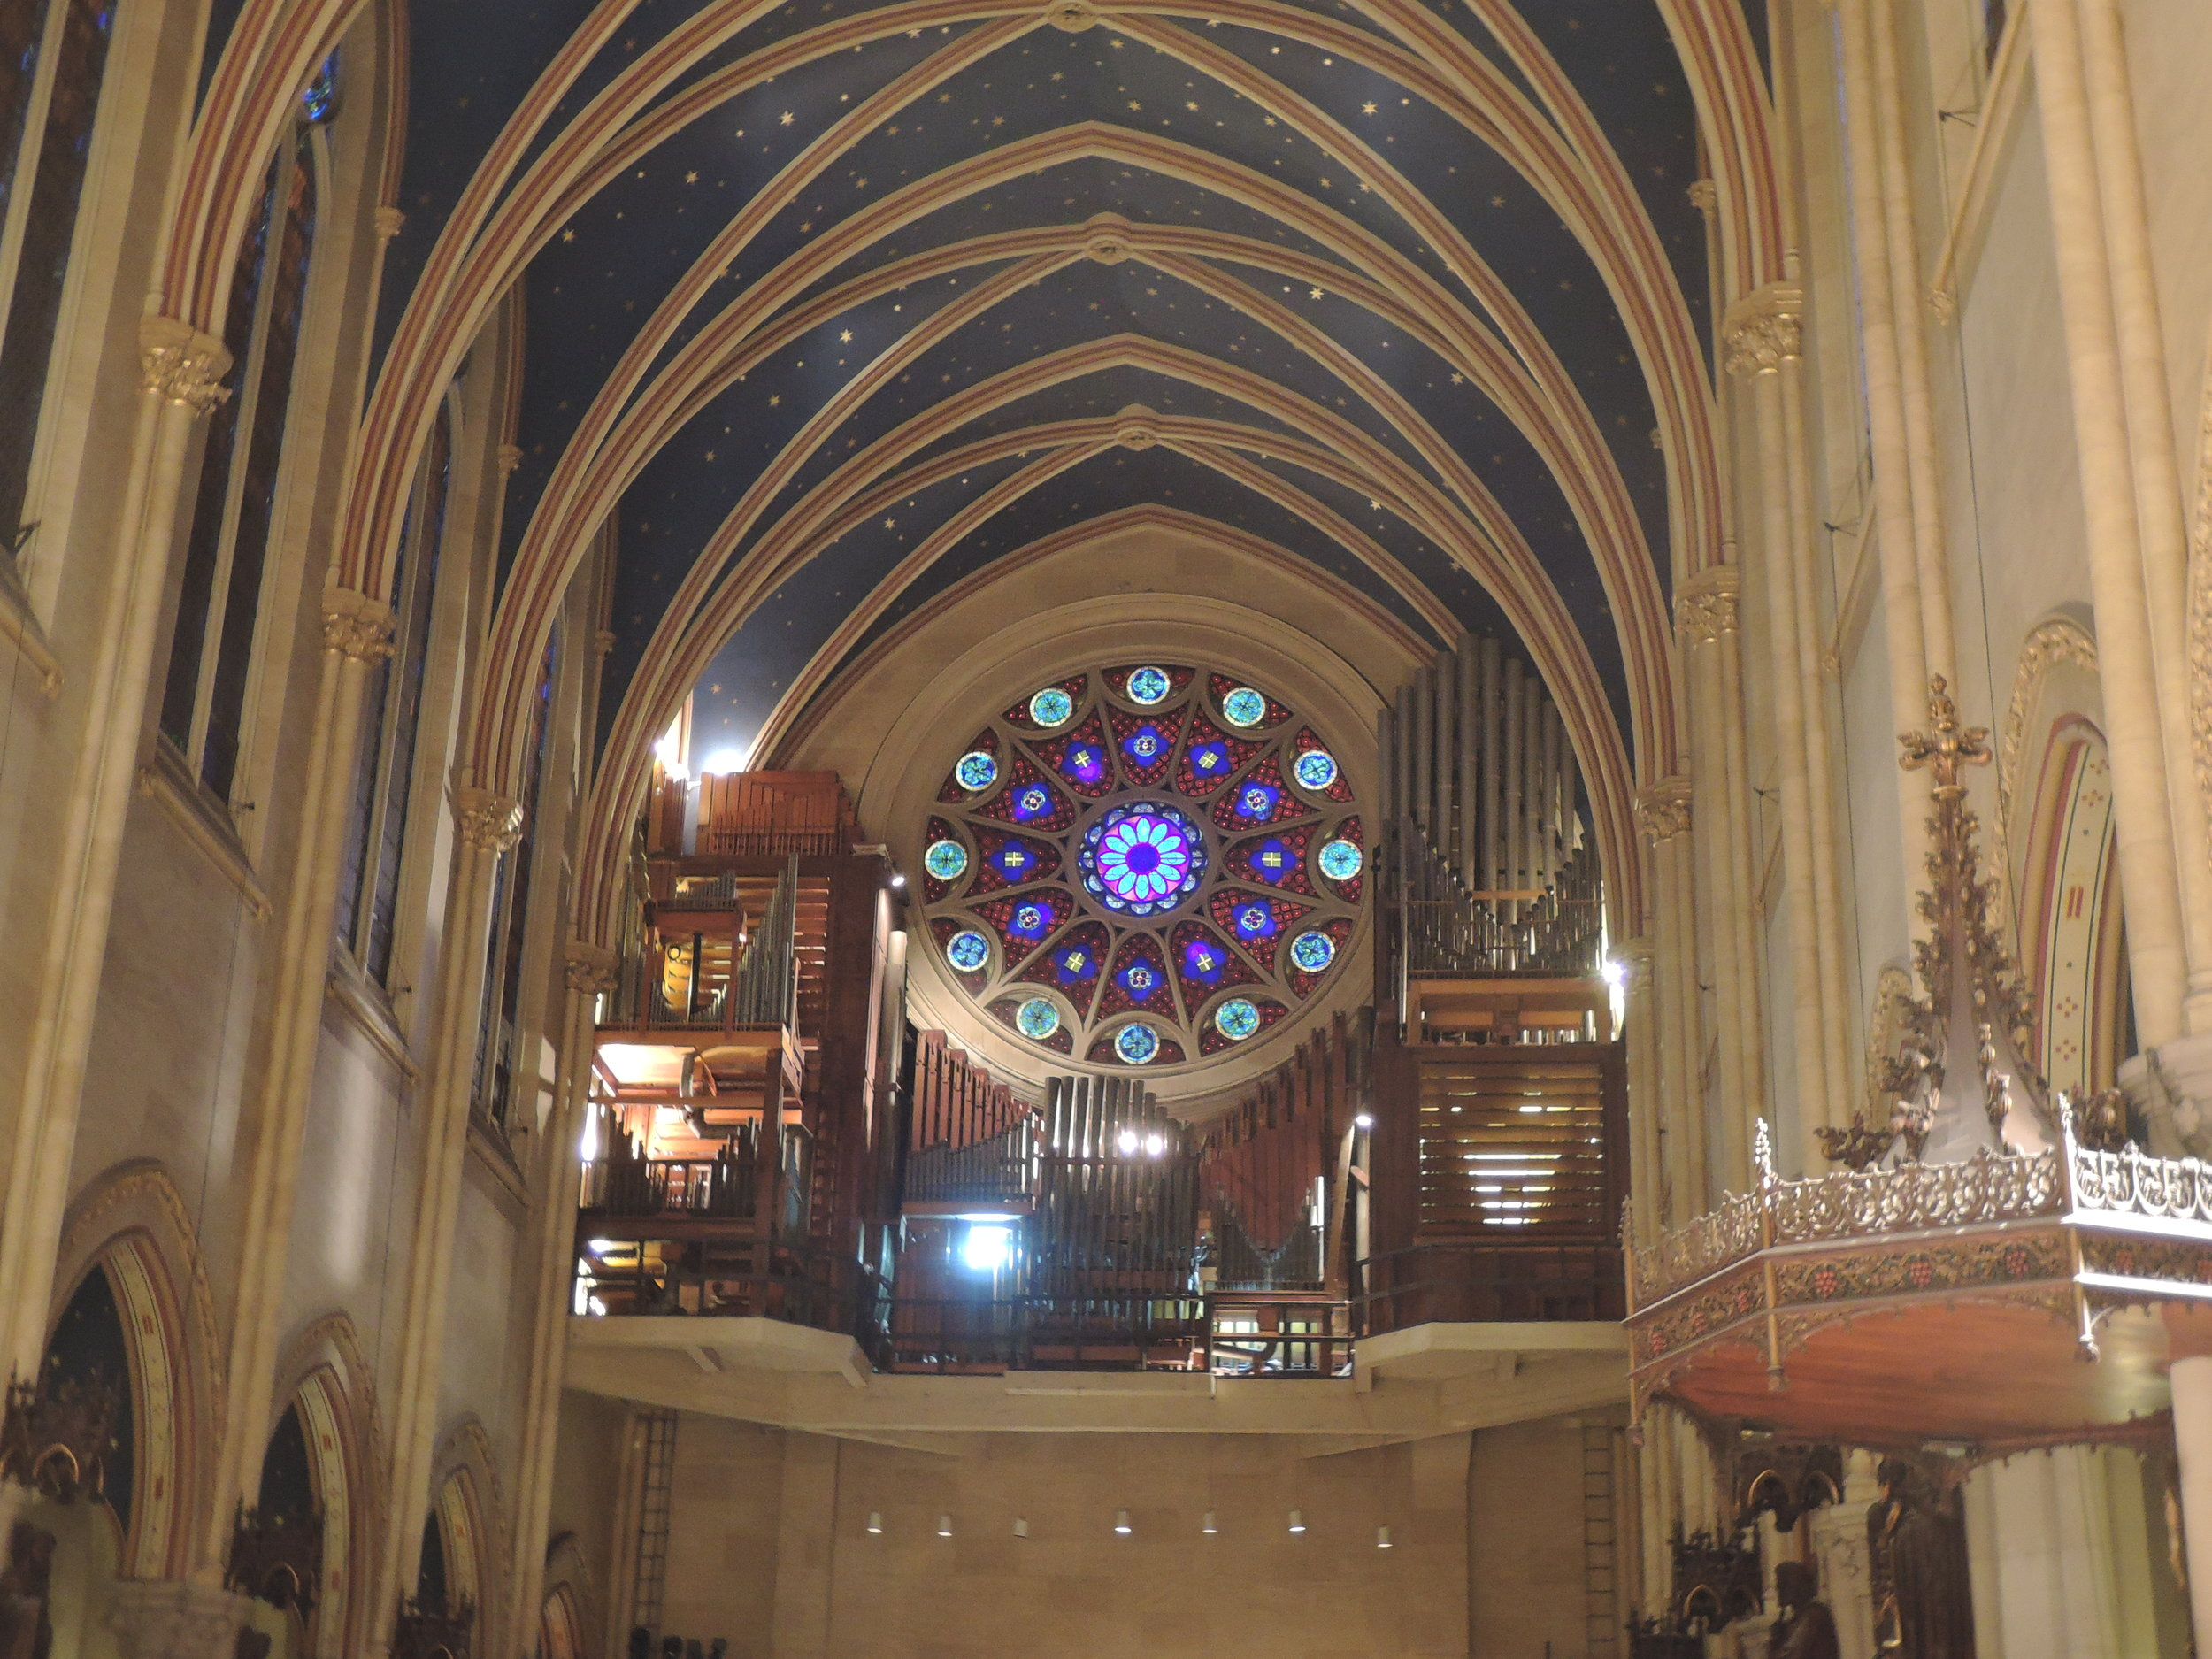 The Rose Window and the organ loft at Saint Mary's